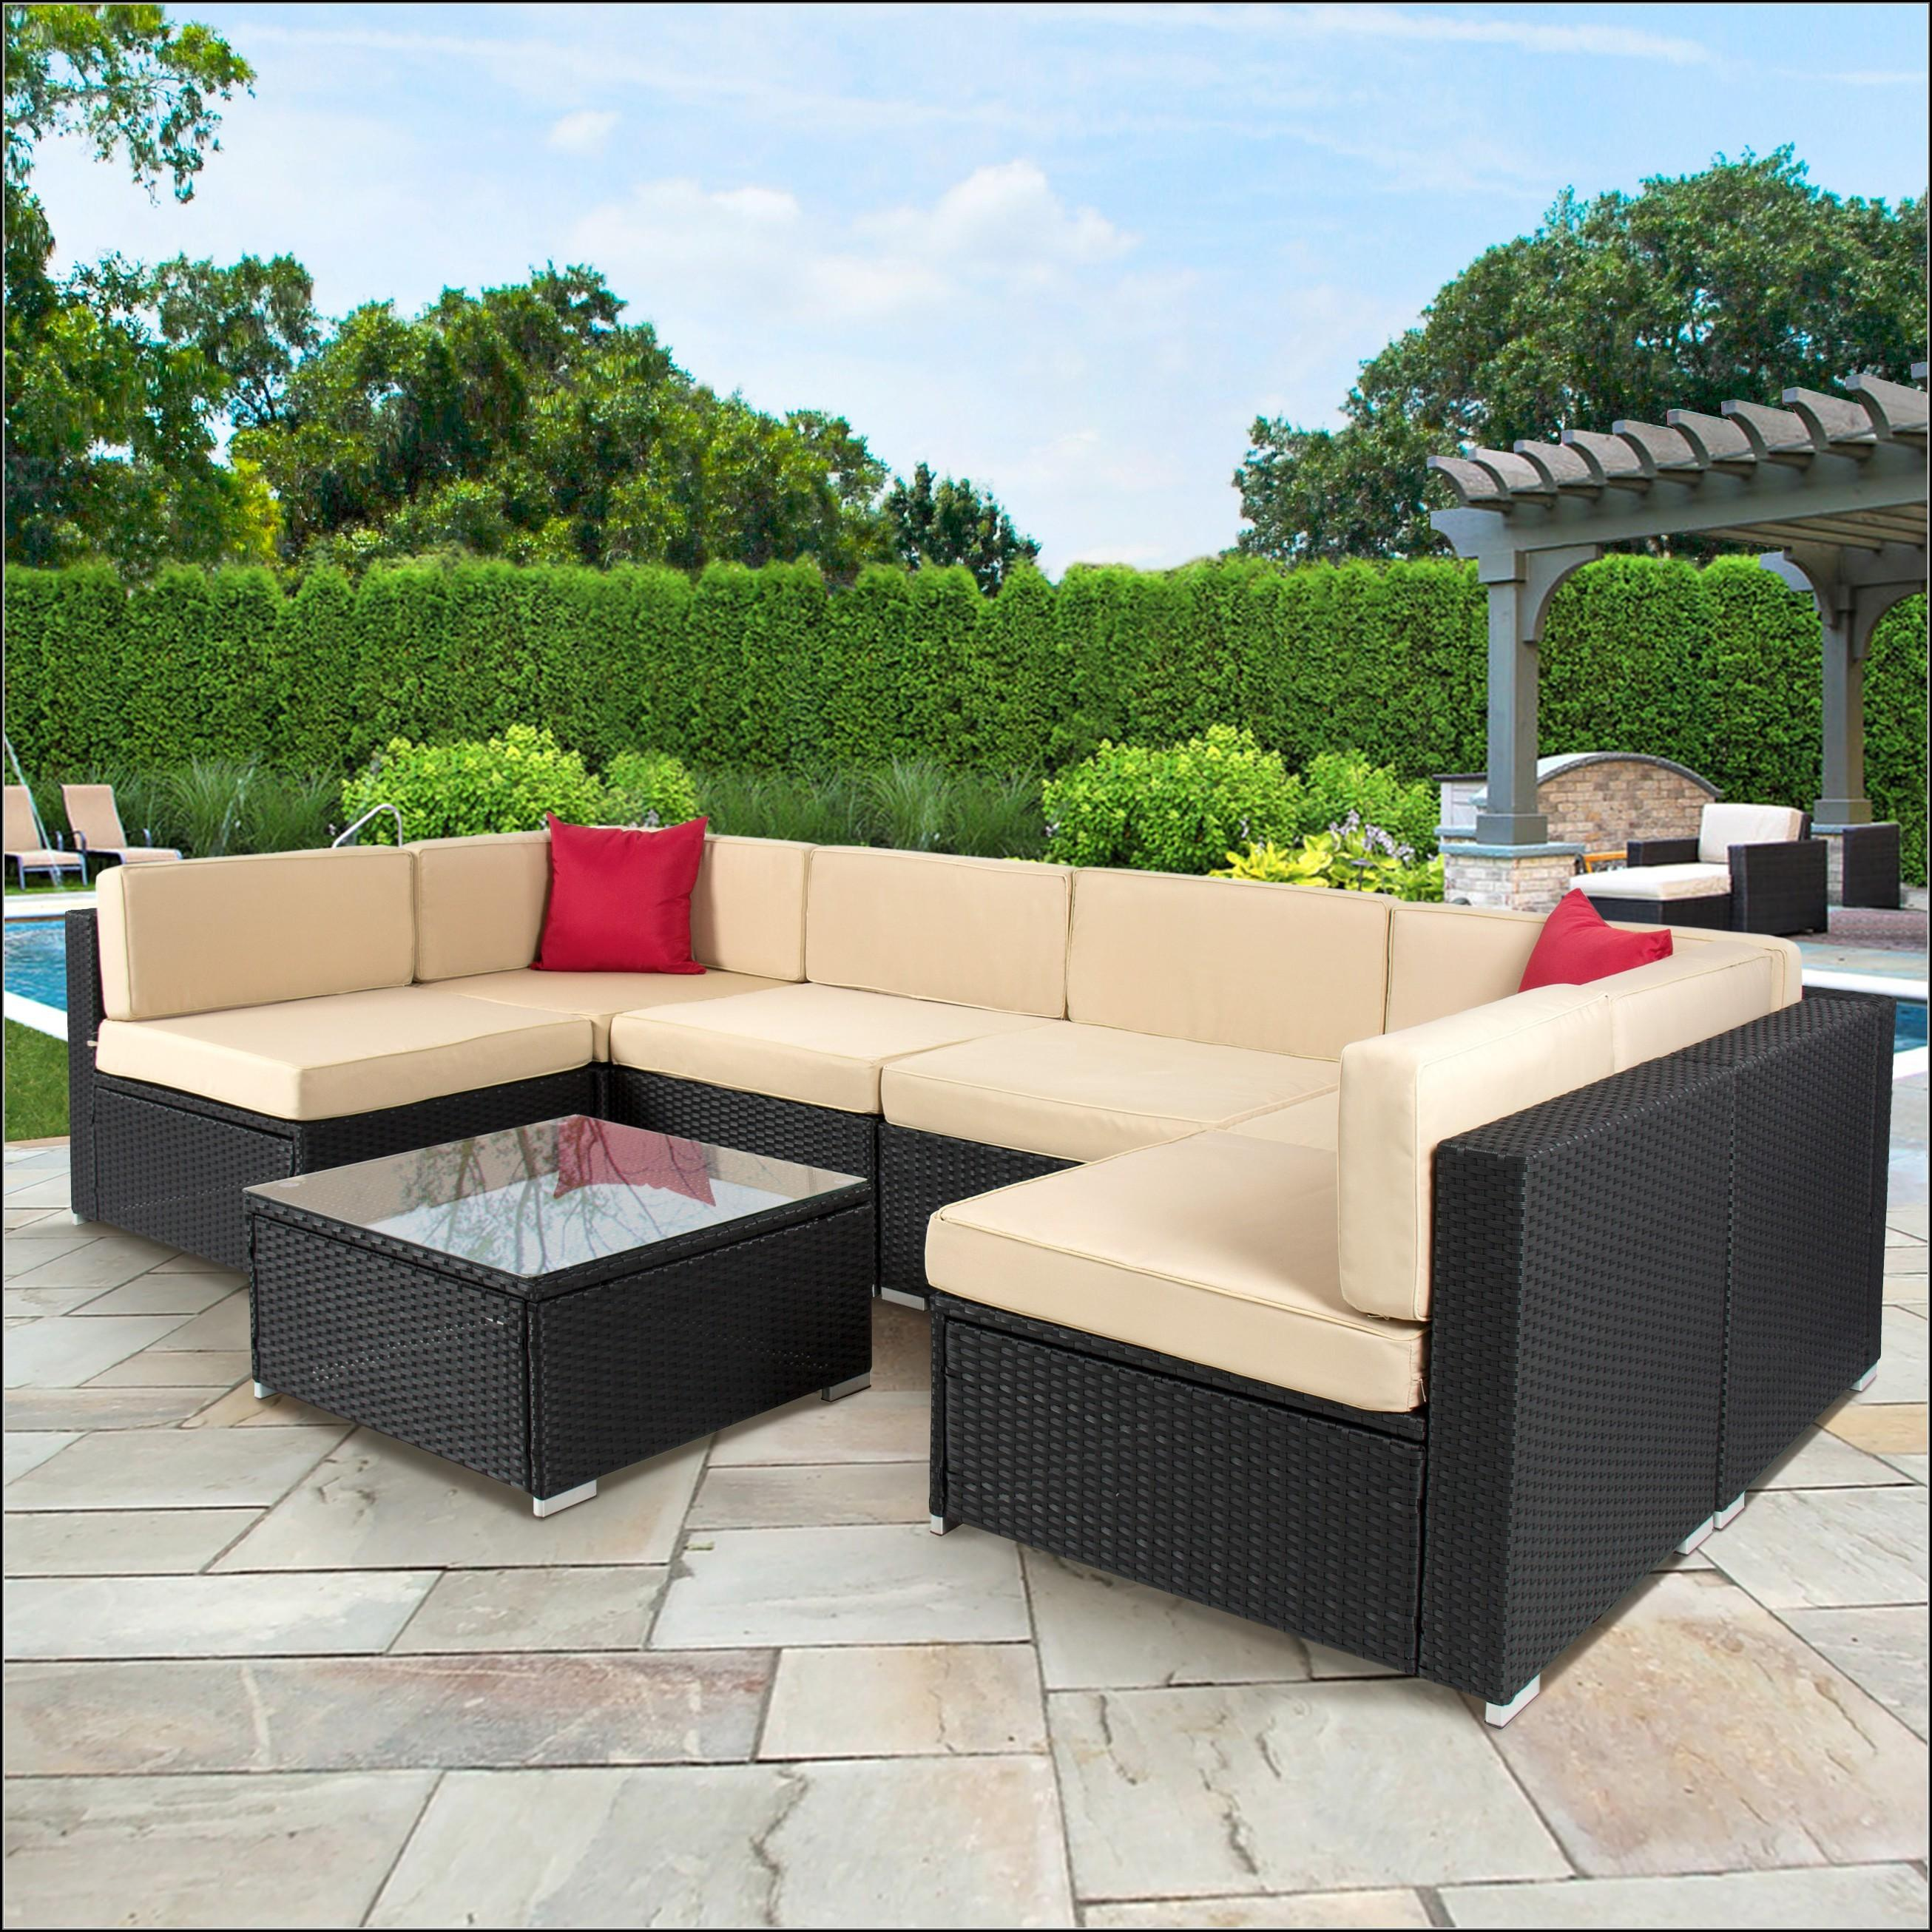 Black Wicker Patio Furniture Walmart Patios Home